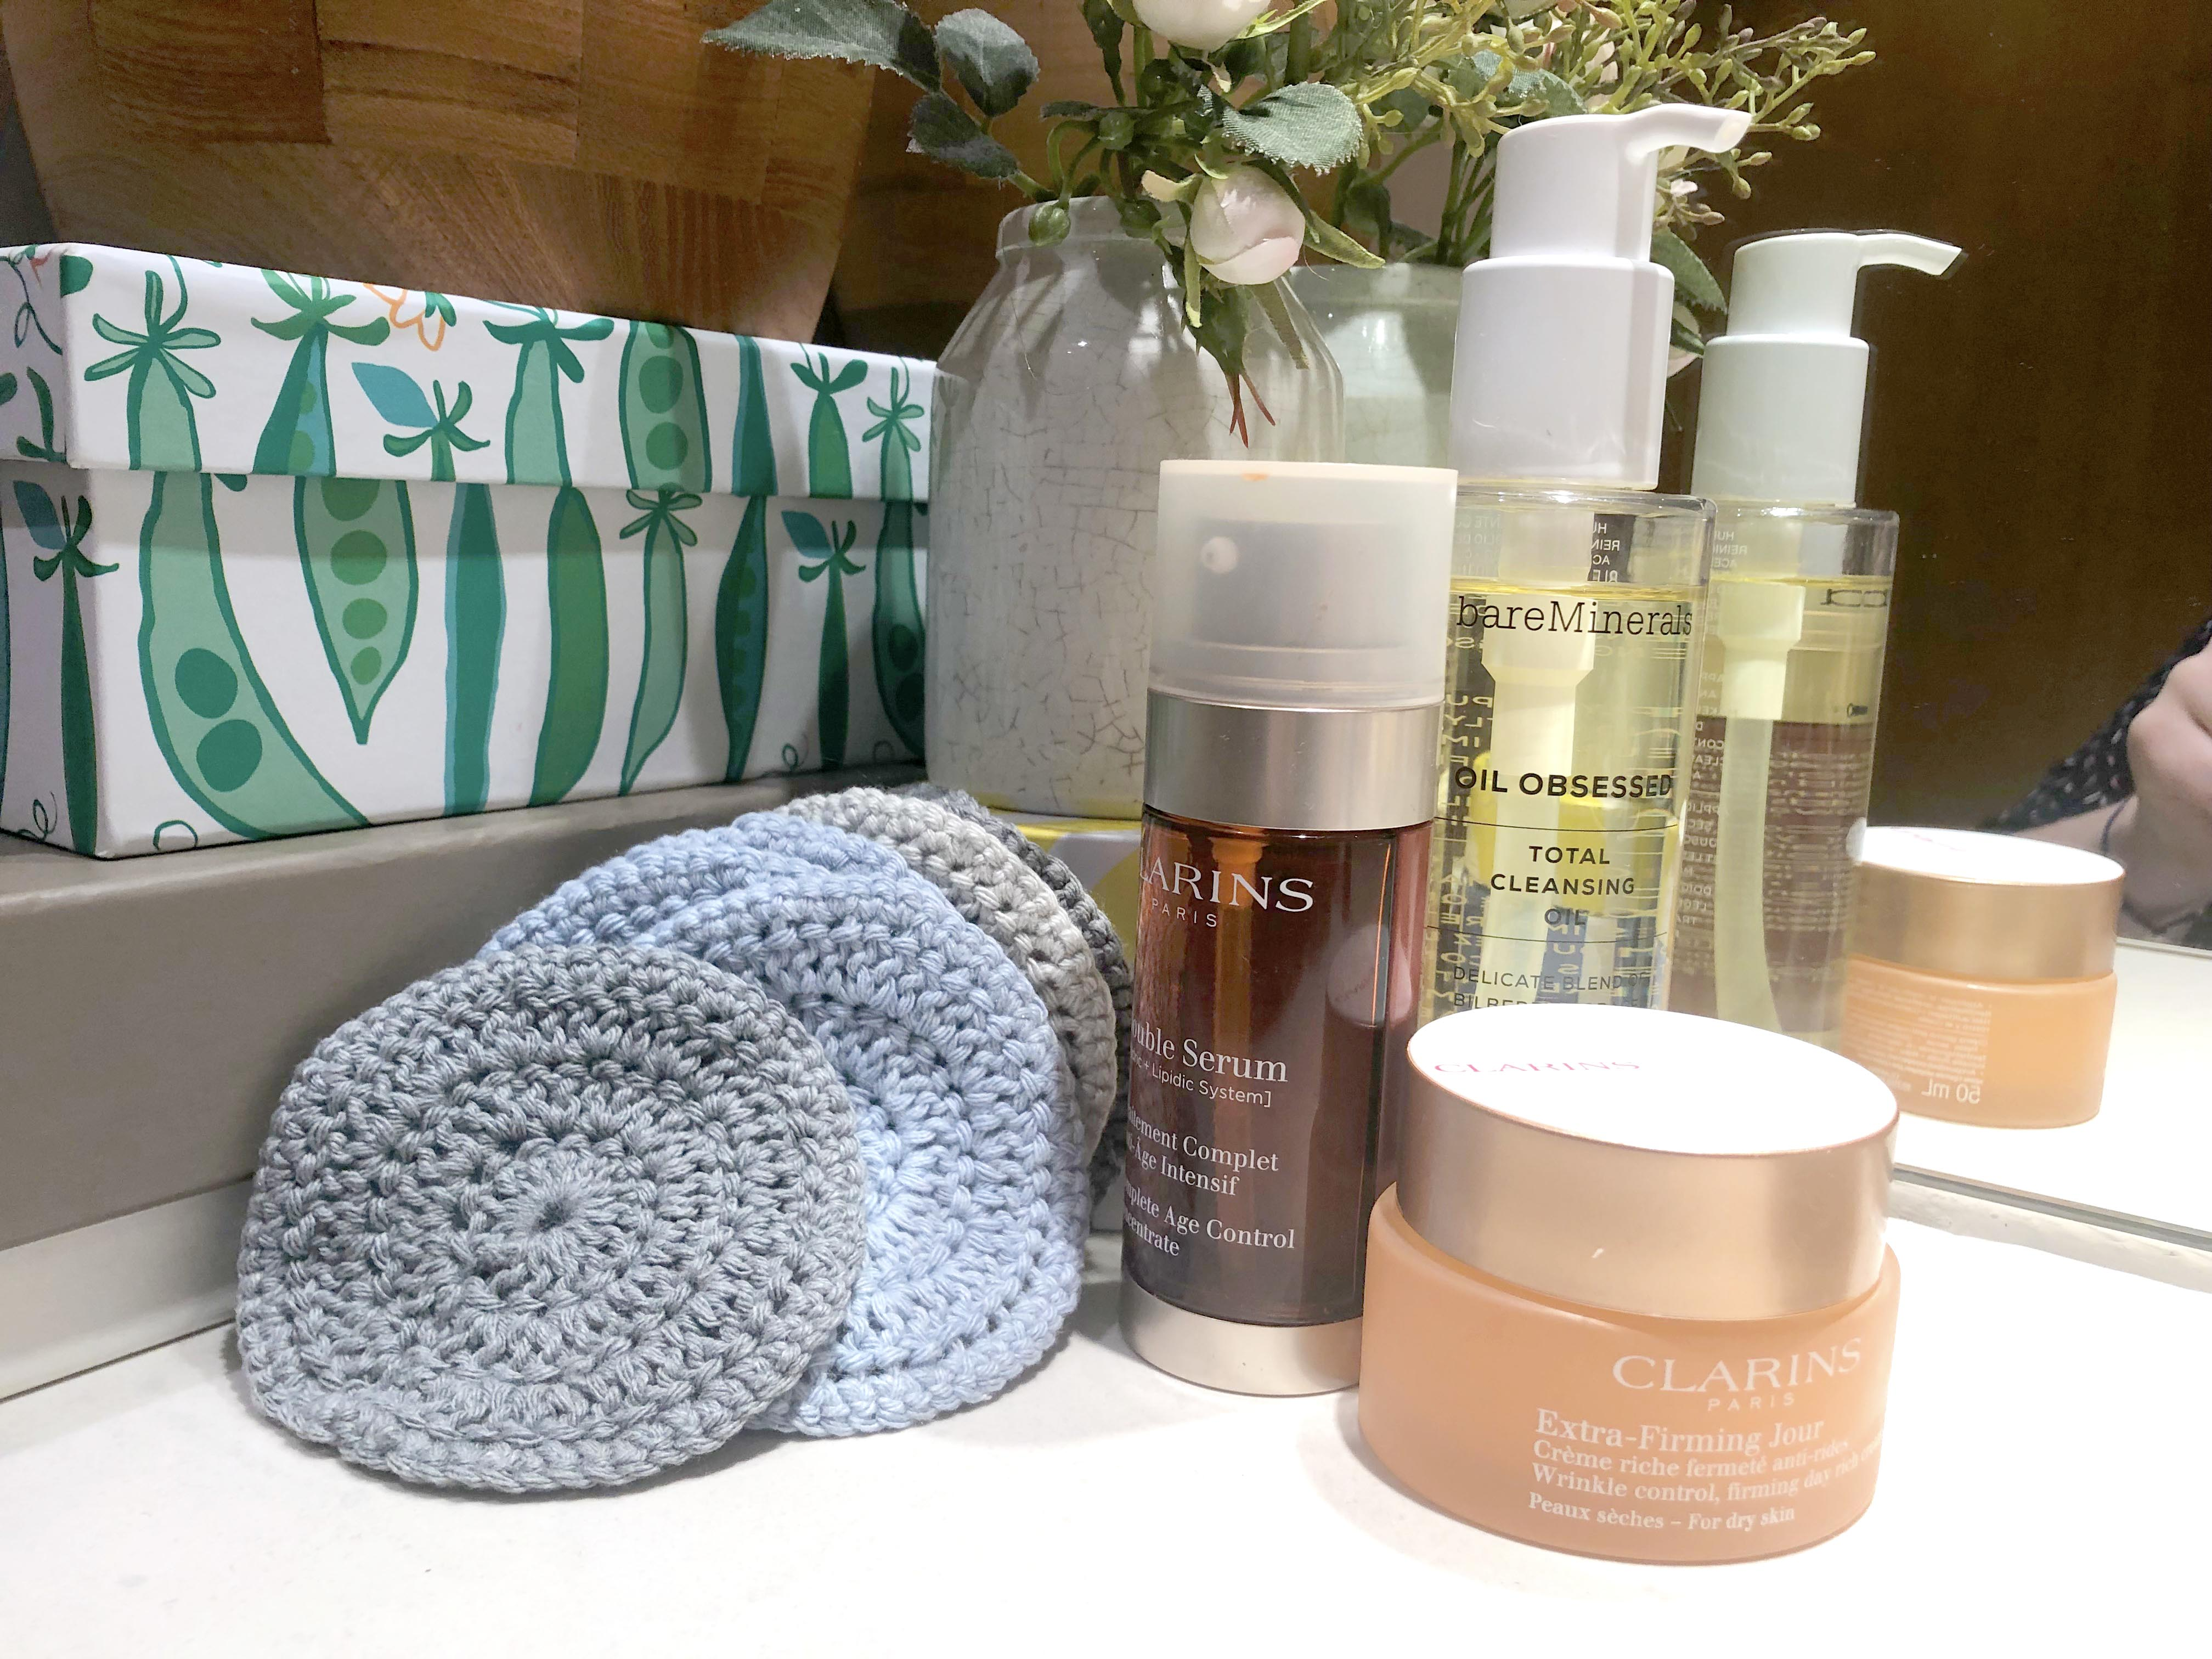 Crochet face pads with products in bathroom